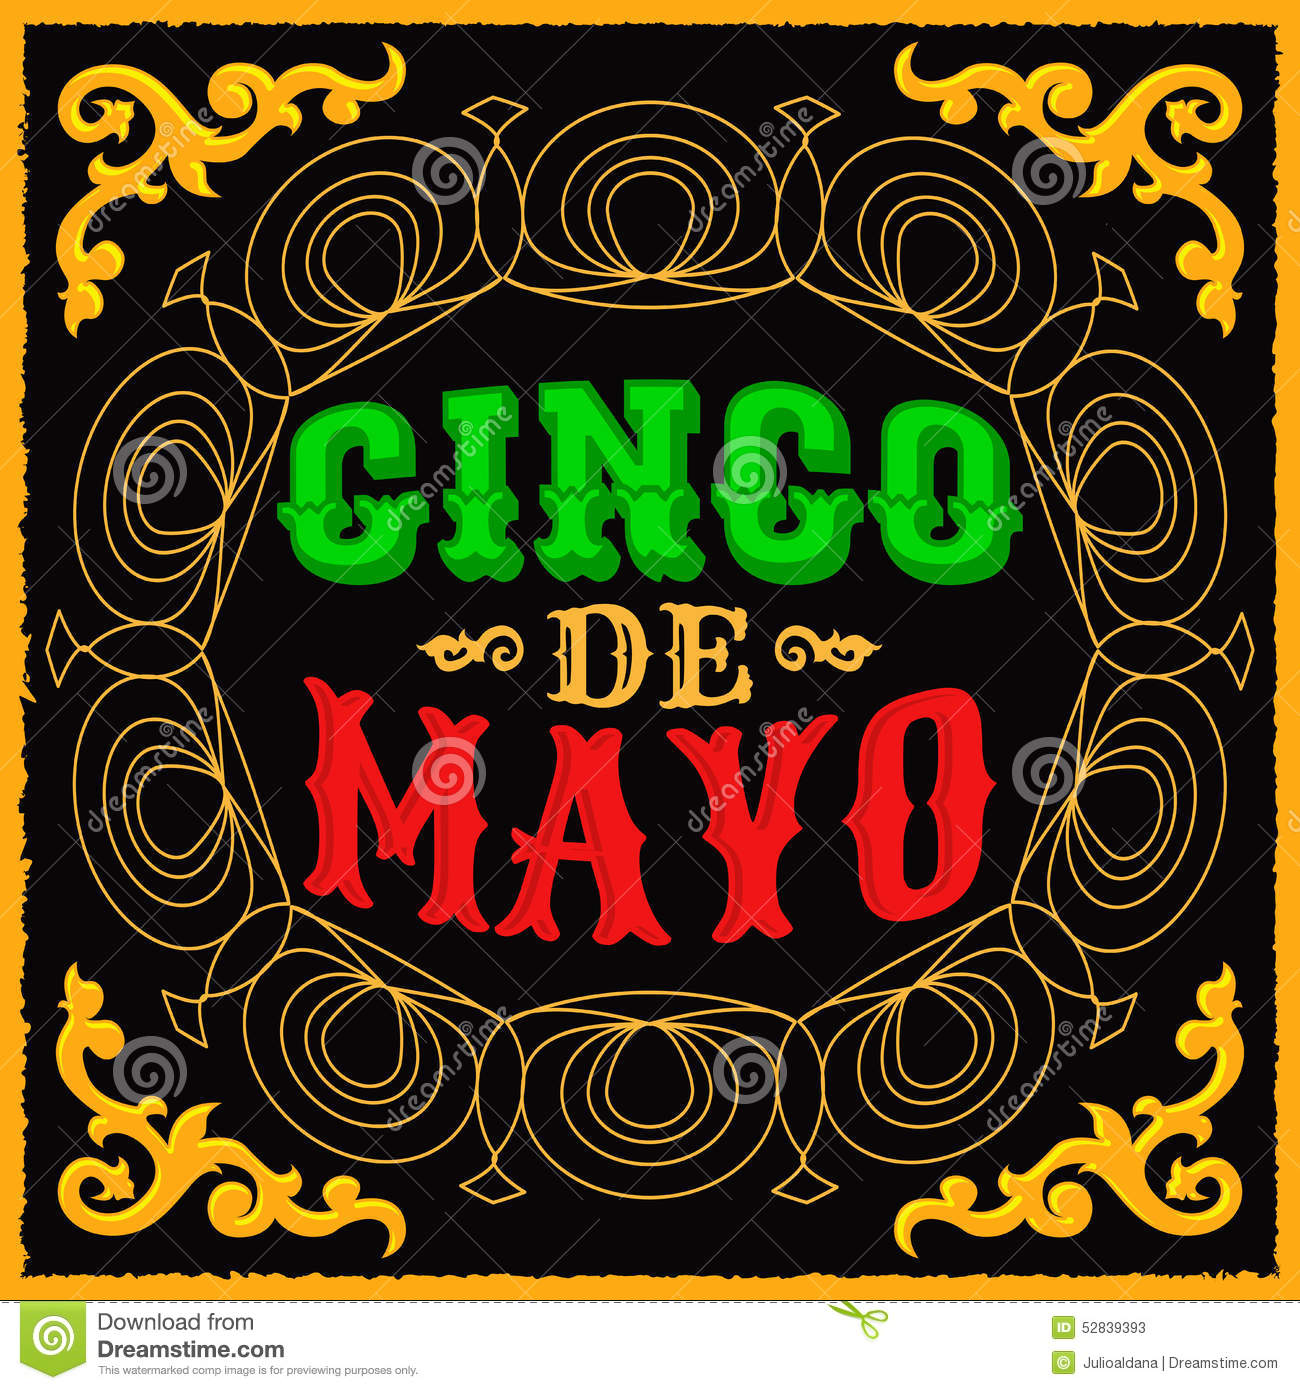 cinco de mayo mexican traditional holiday design stock vector illustration of card. Black Bedroom Furniture Sets. Home Design Ideas